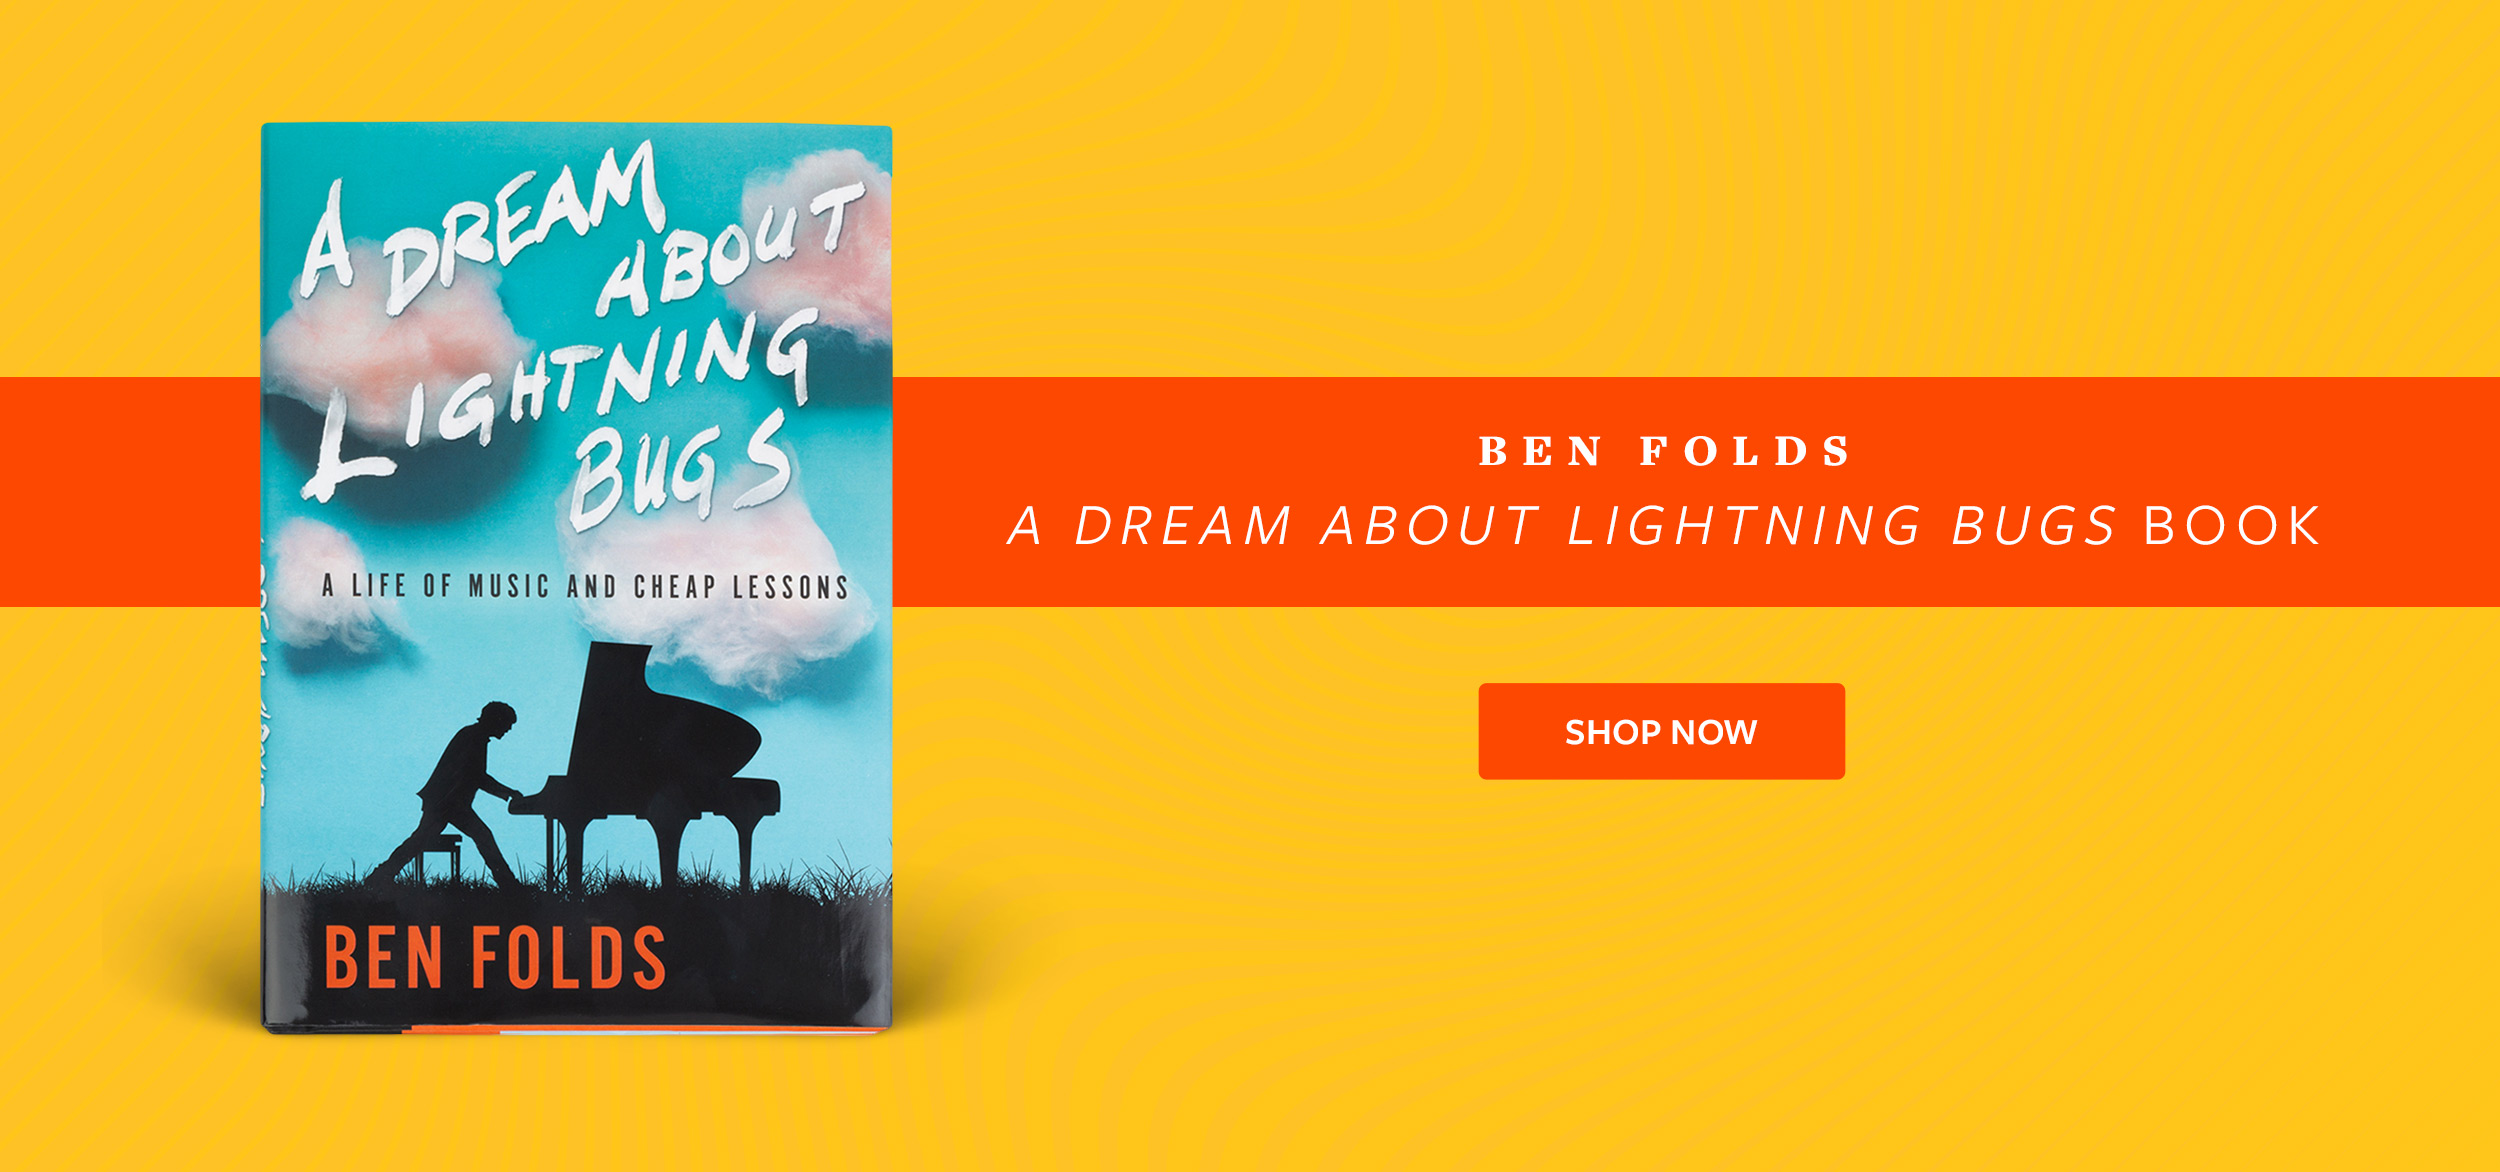 A Dream About Lighting Bugs Book - Available Now